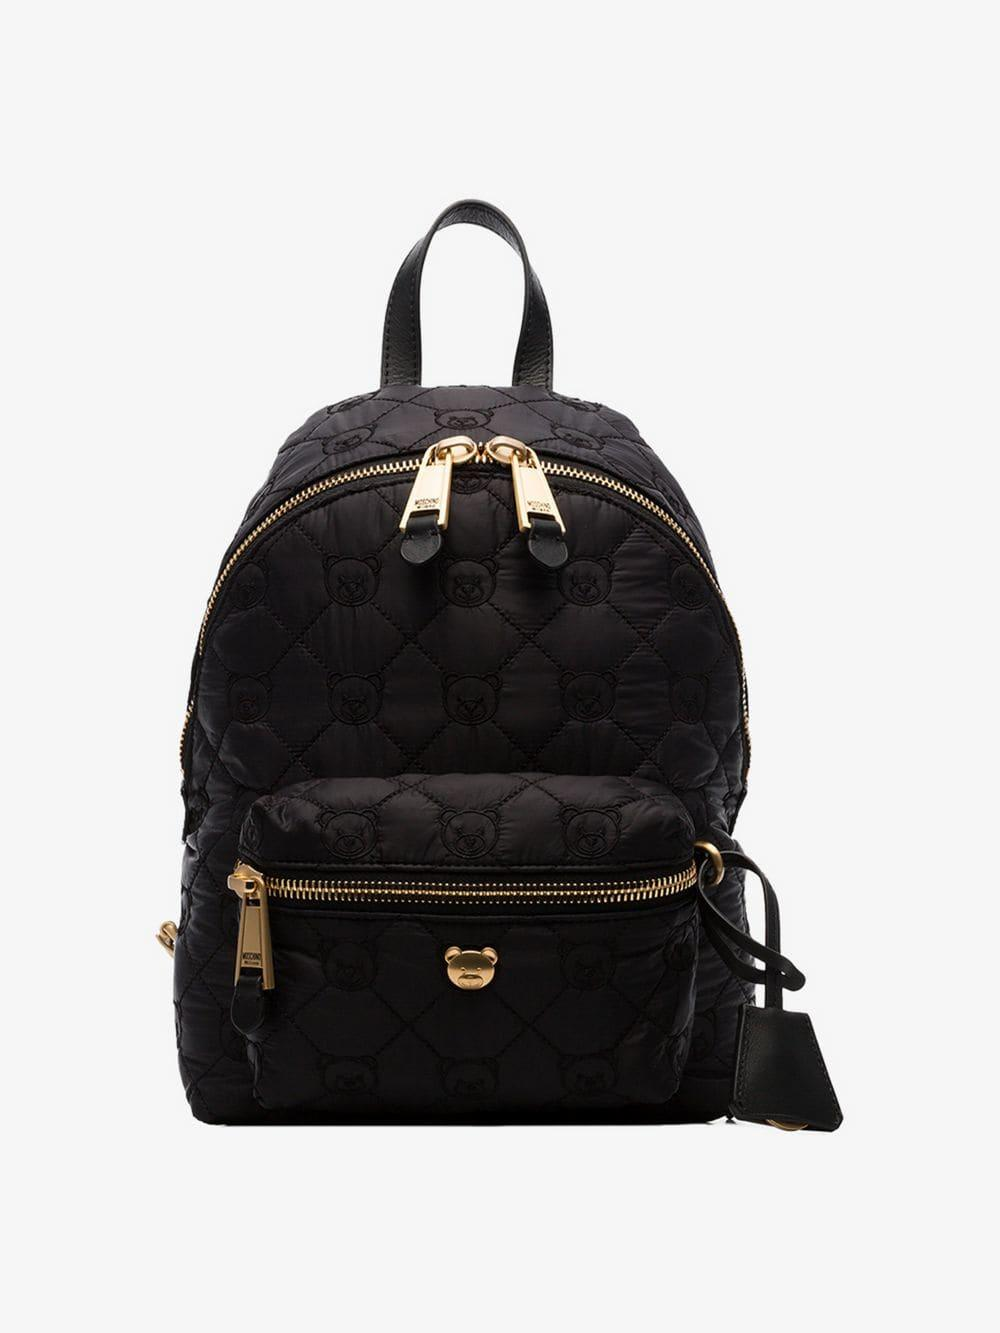 6fee0141423a7 Lyst - Moschino Black Quilted Teddy Bear Motif Backpack in Black